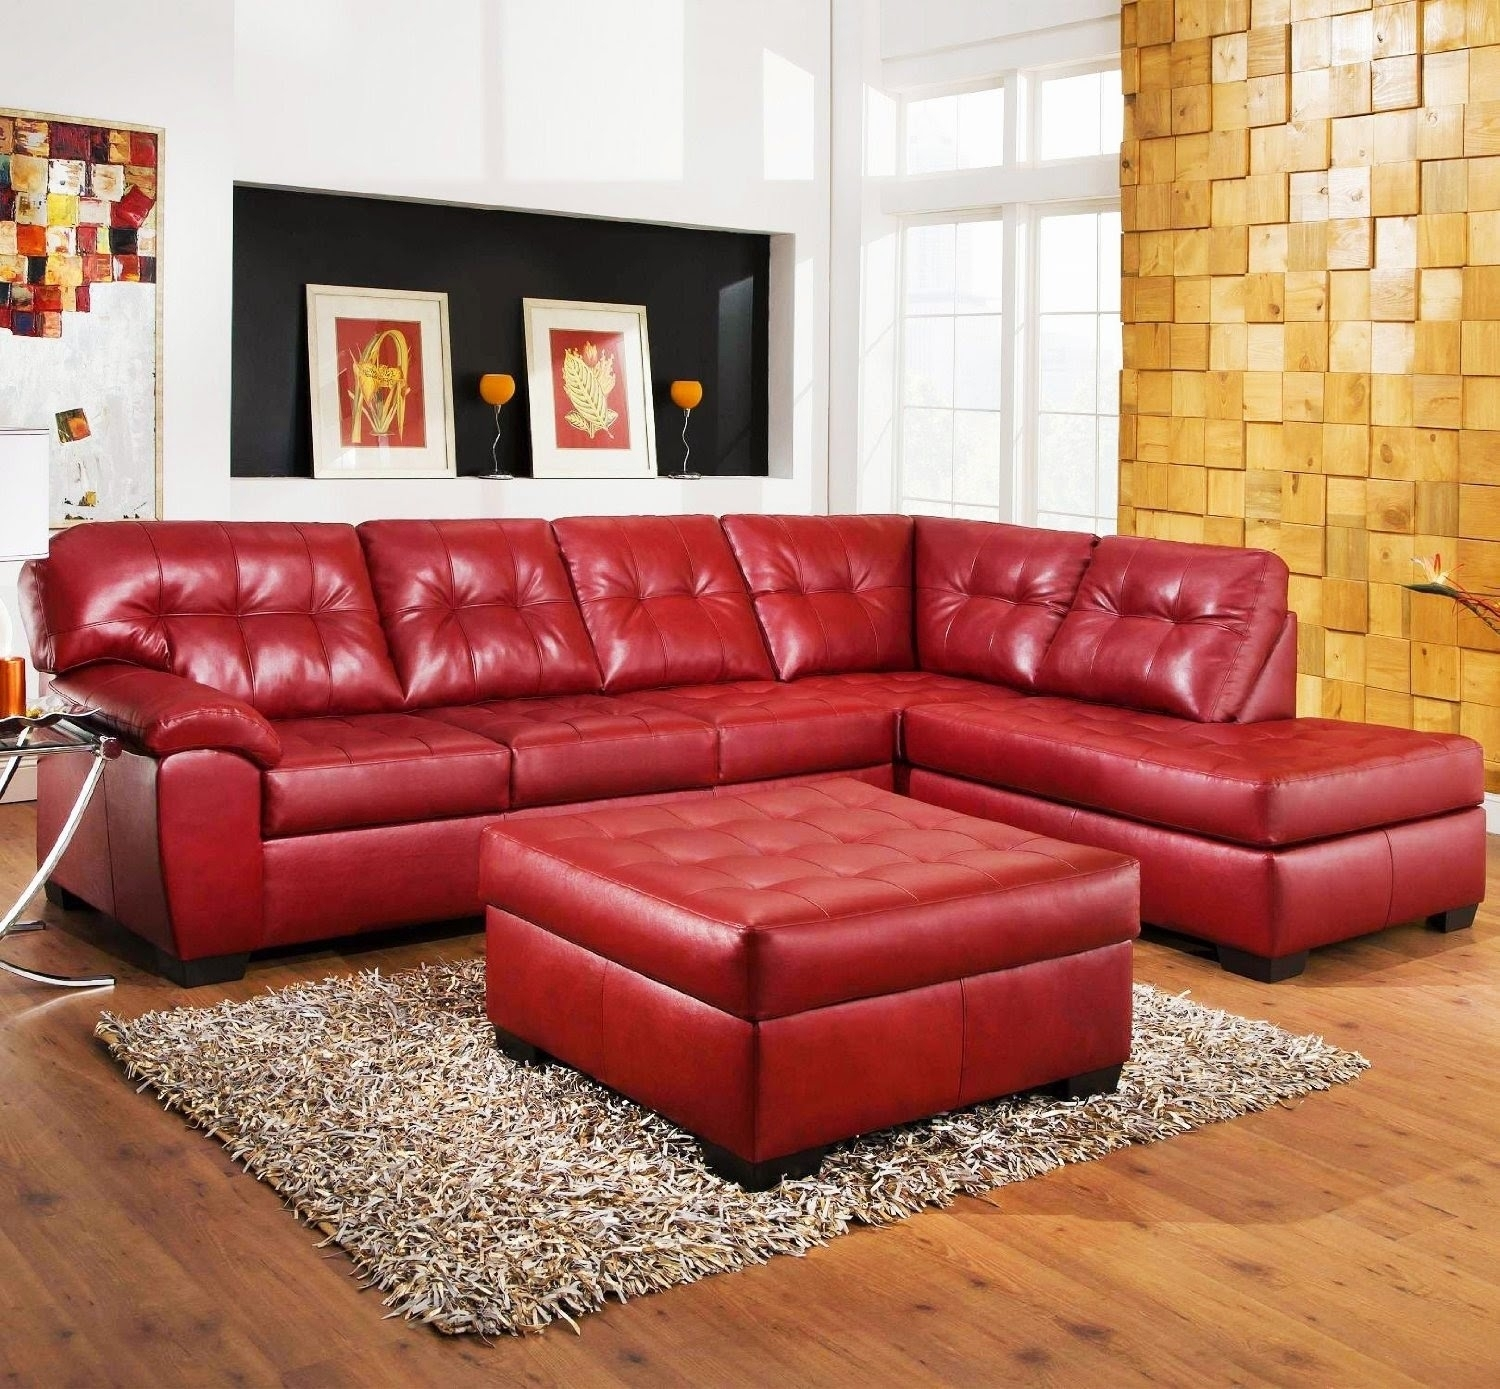 Red Faux Leather Sectional Sofa • Sectional Sofa Pertaining To Red Faux Leather Sectionals (Image 4 of 10)